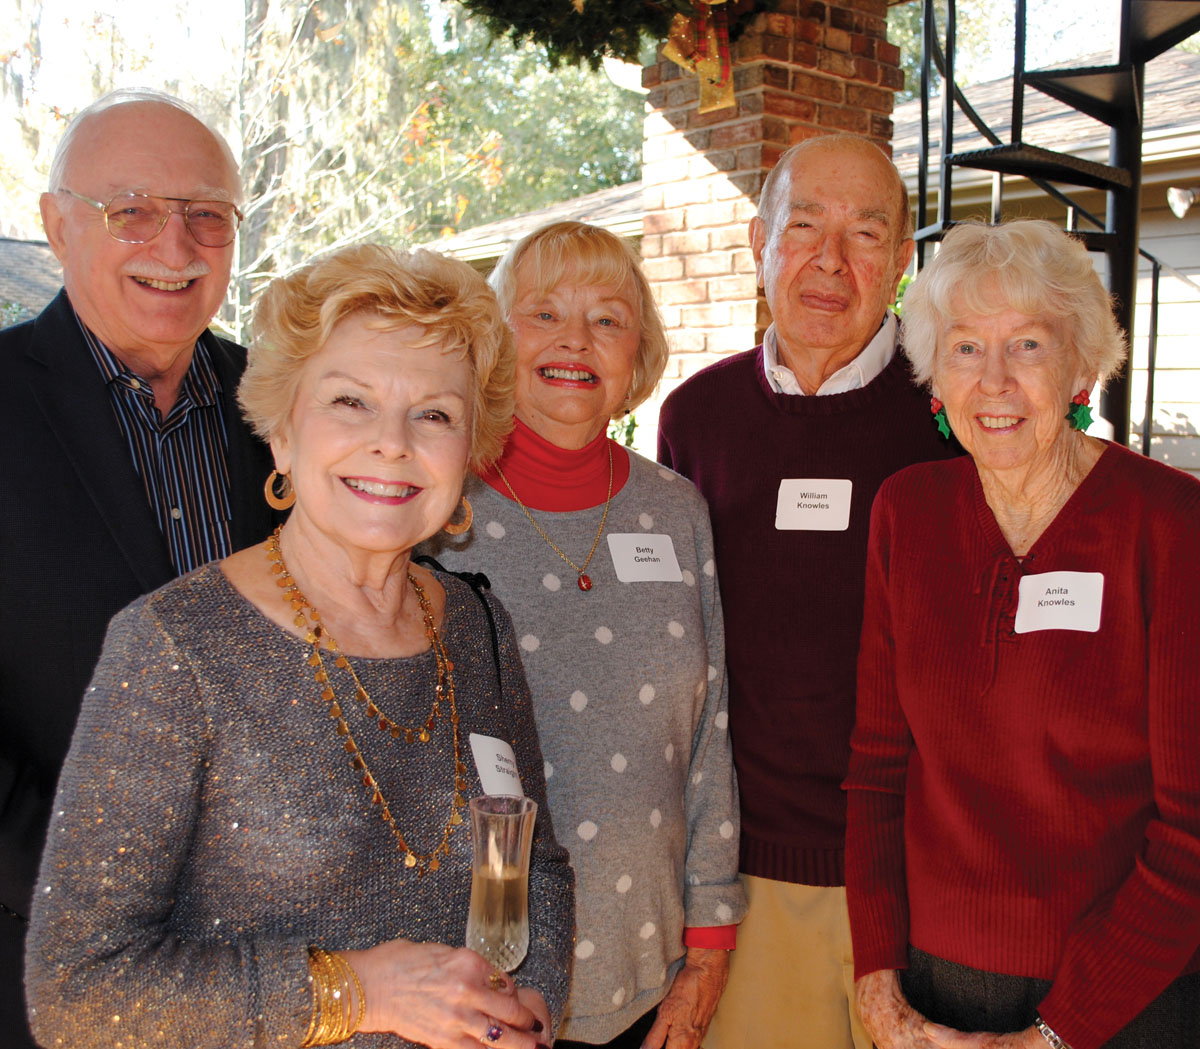 Houston Symphony League Bay Area members Bill and Sherry Straight, Betty Geehan and Bill and Anita Knowles, from left, enjoy the gorgeous weather out on the patio at their annual Holiday Brunch.